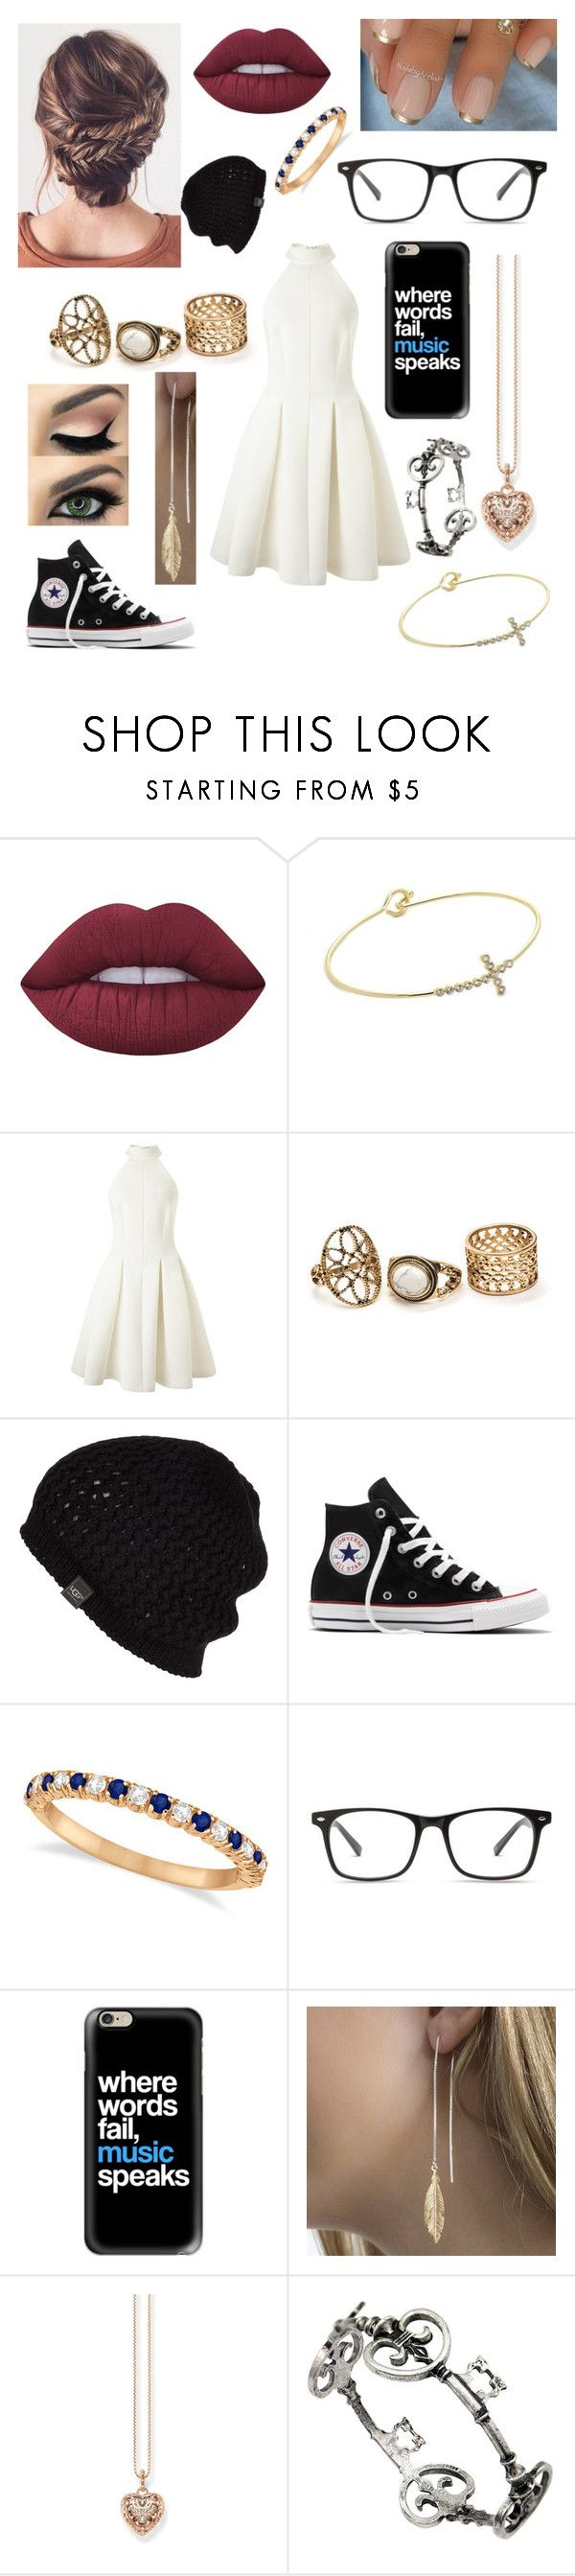 """""""'Mary, Did You Know'"""" by caketime ❤ liked on Polyvore featuring Lime Crime, New Directions, Miss Selfridge, UGG Australia, Converse, Allurez, Casetify, Hurleyburley and Thomas Sabo"""